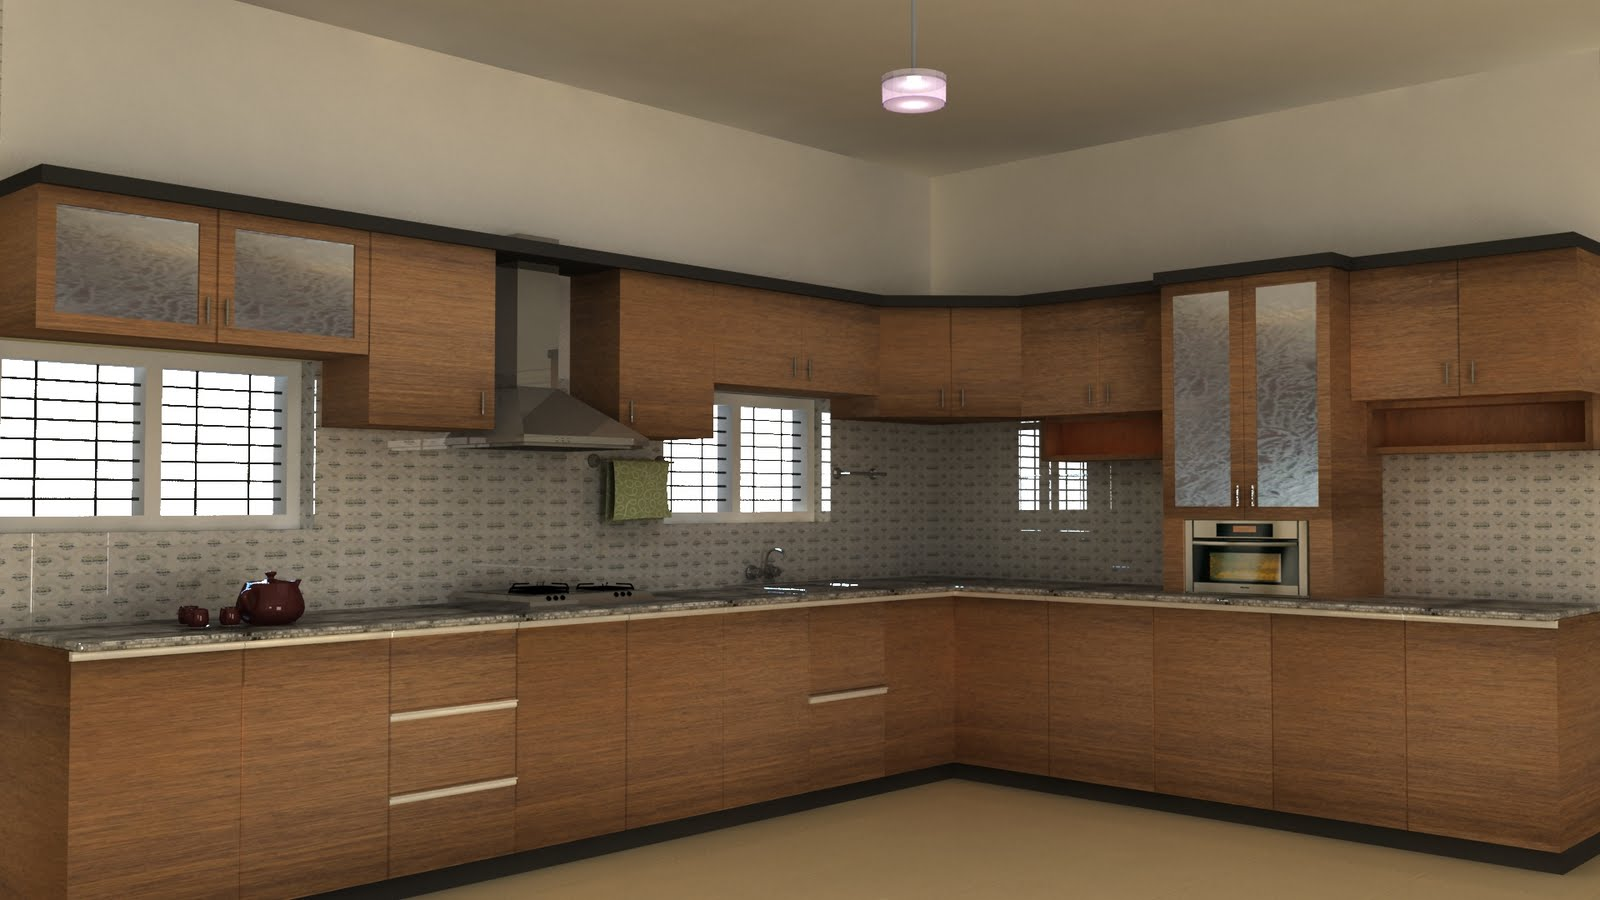 Architectural designing kitchen interiors - Interior design kitchen ...